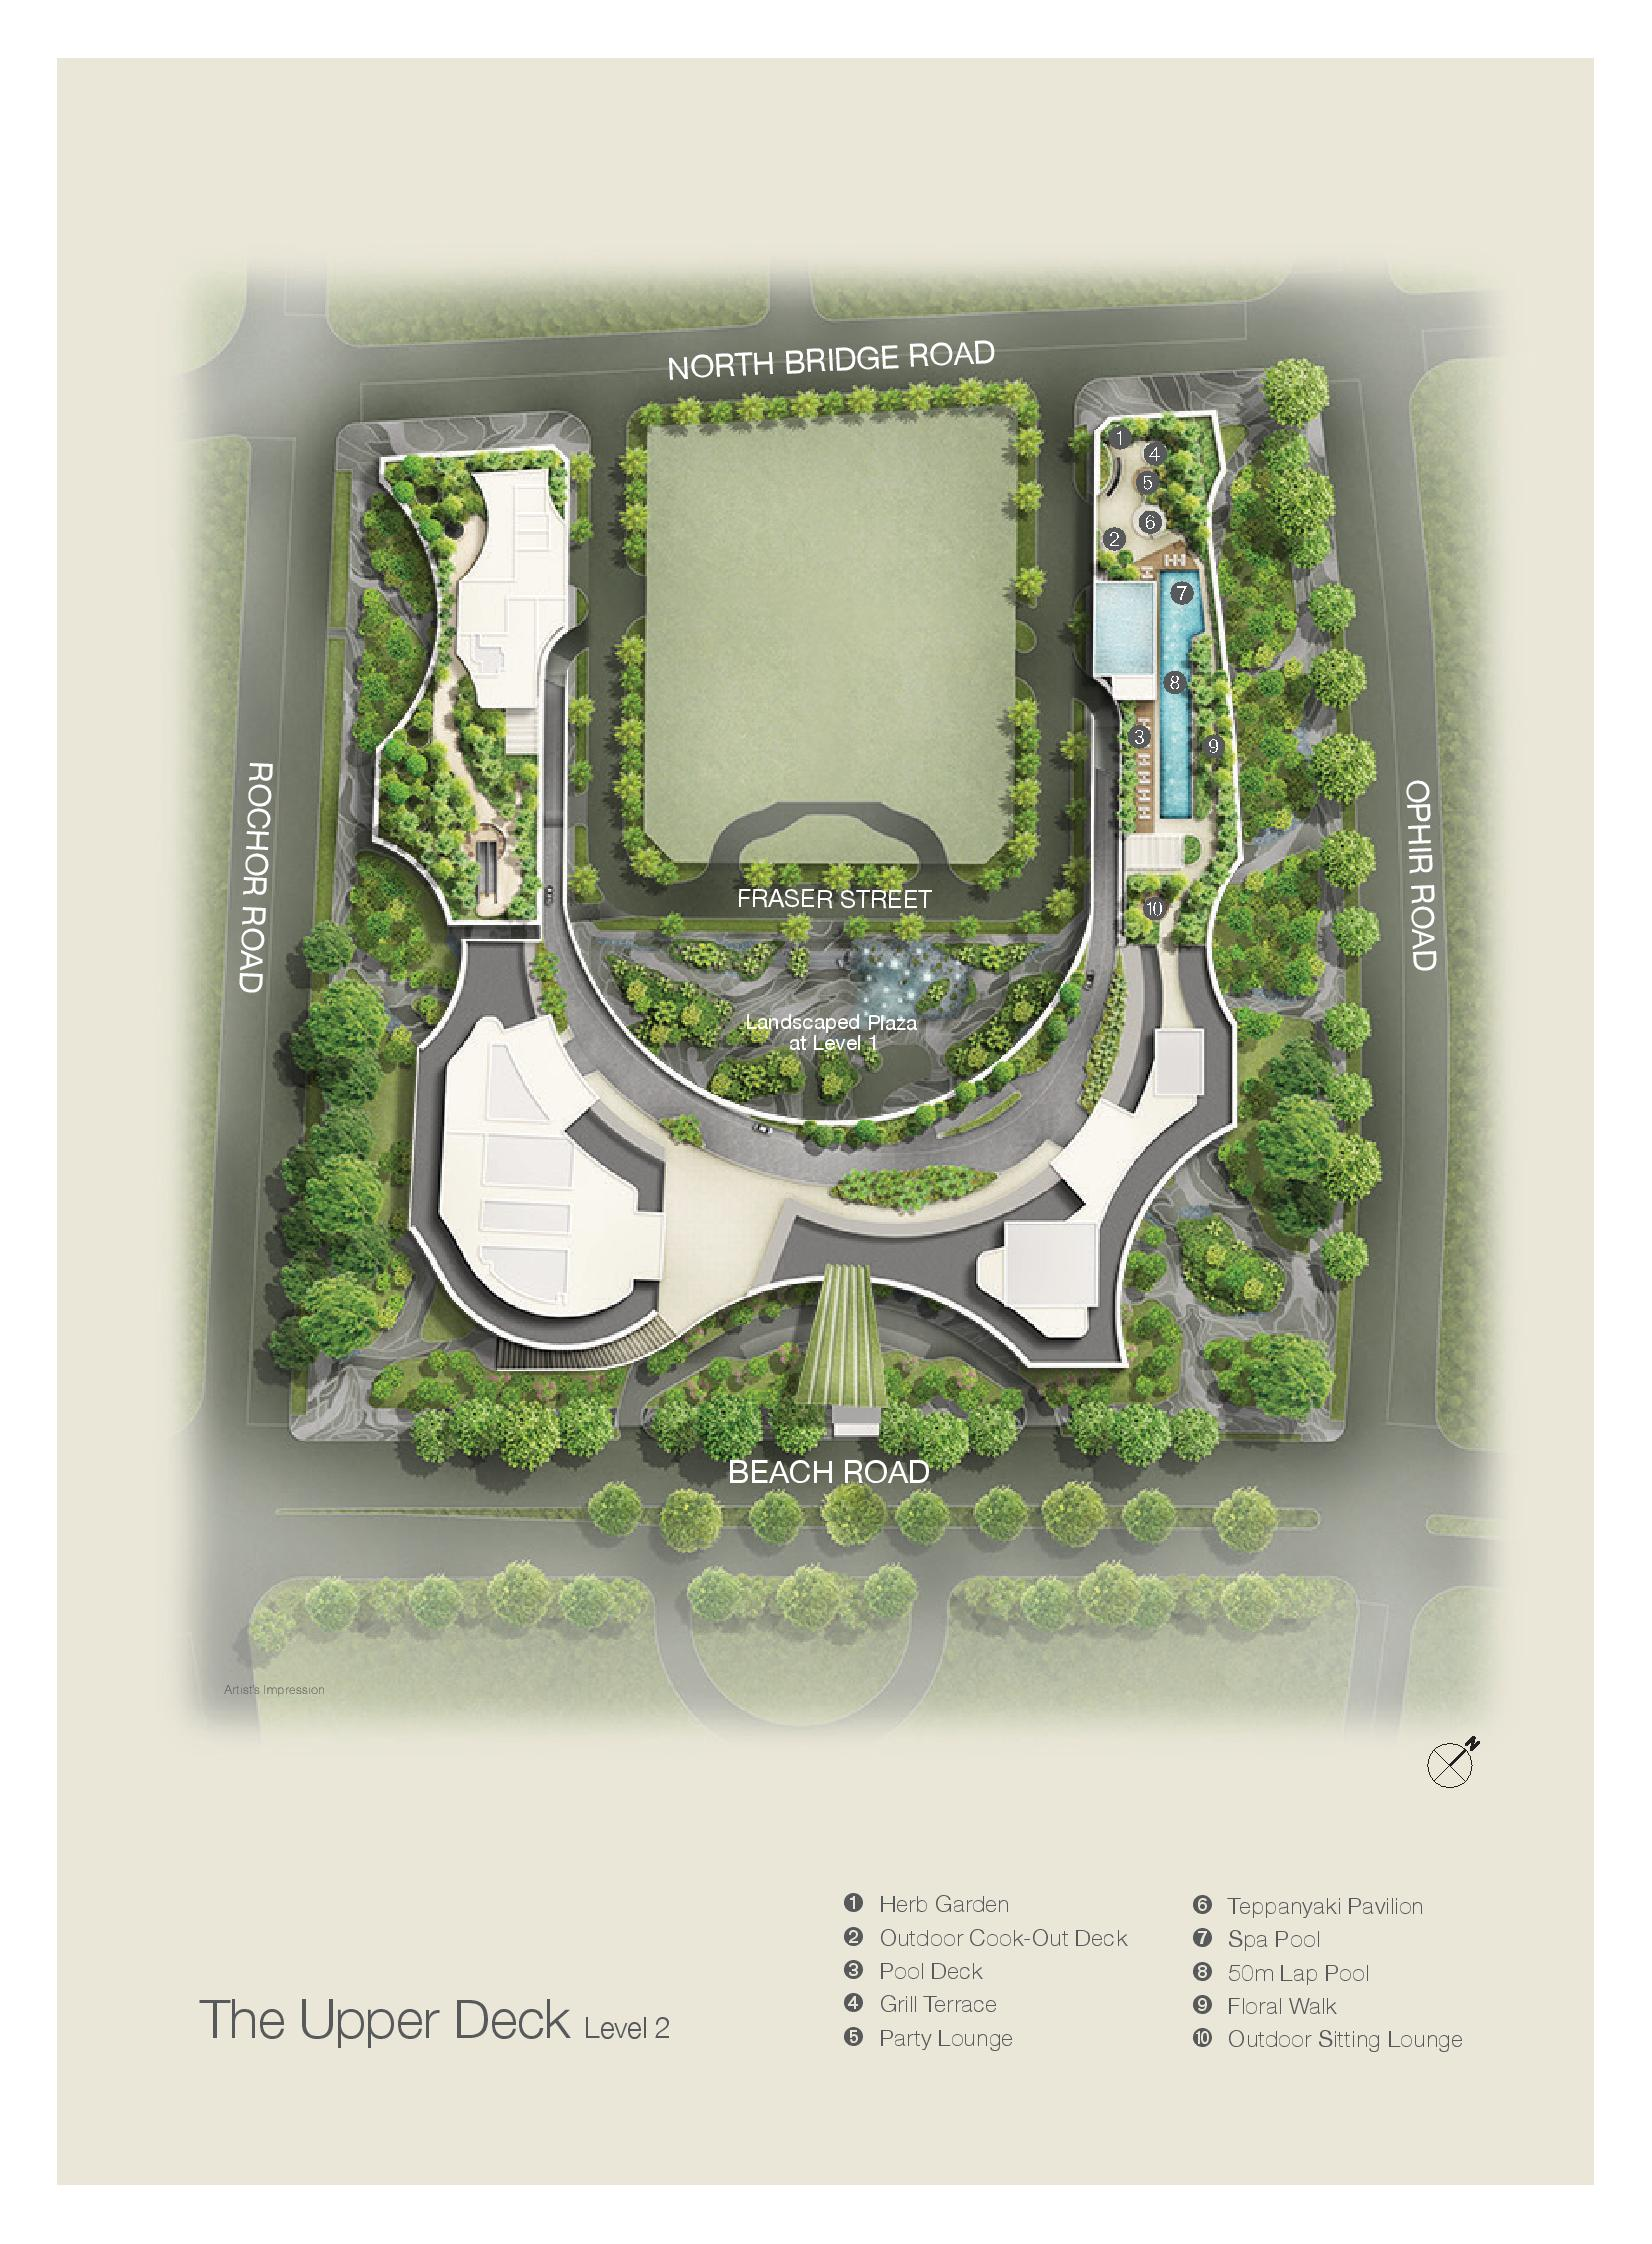 Duo Residences Site Map